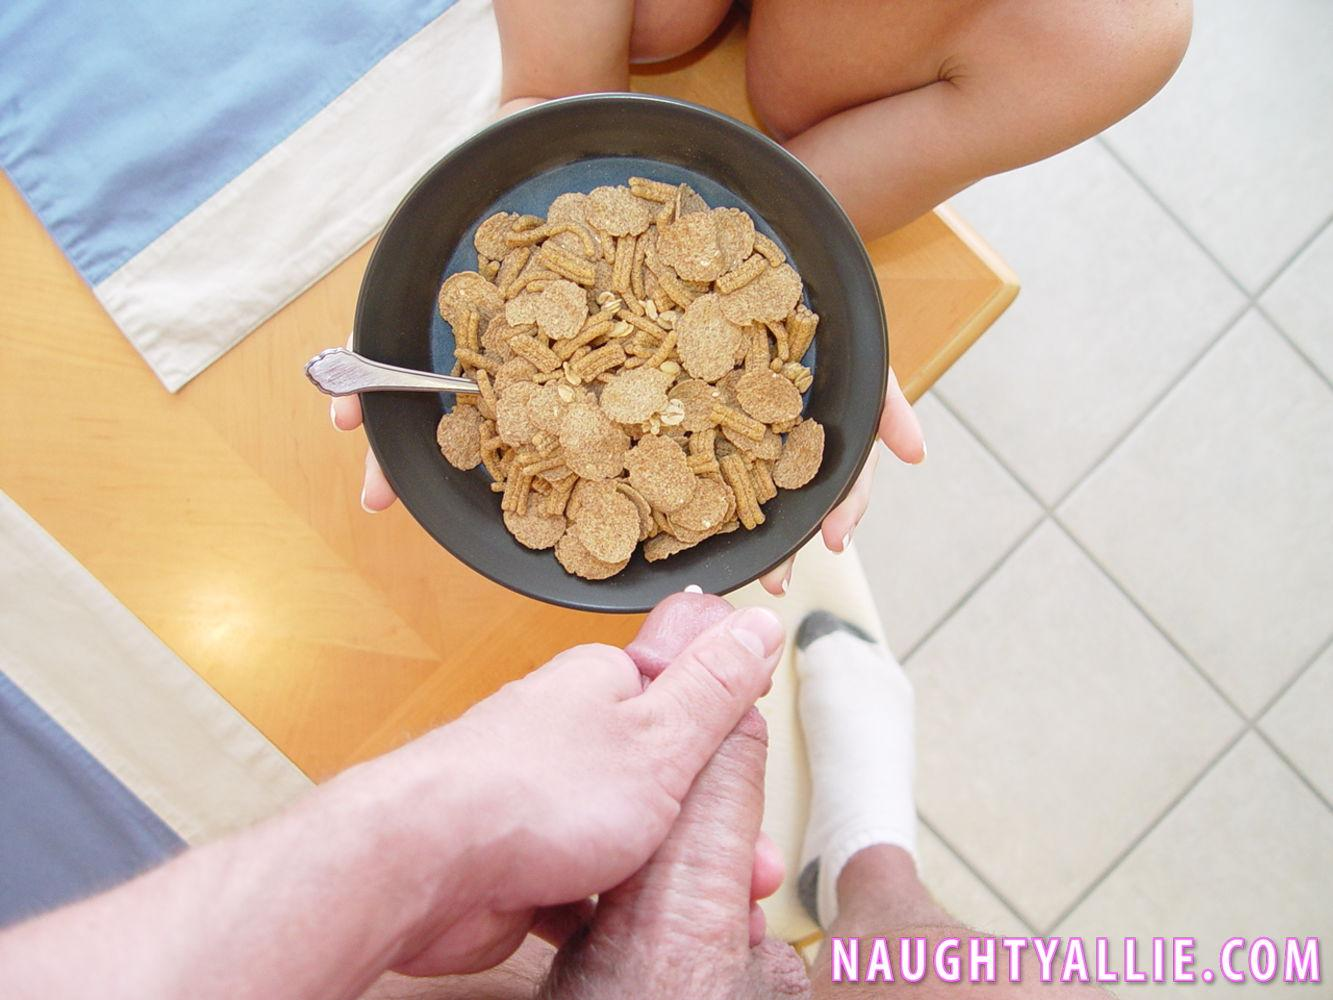 Sperm on cereal